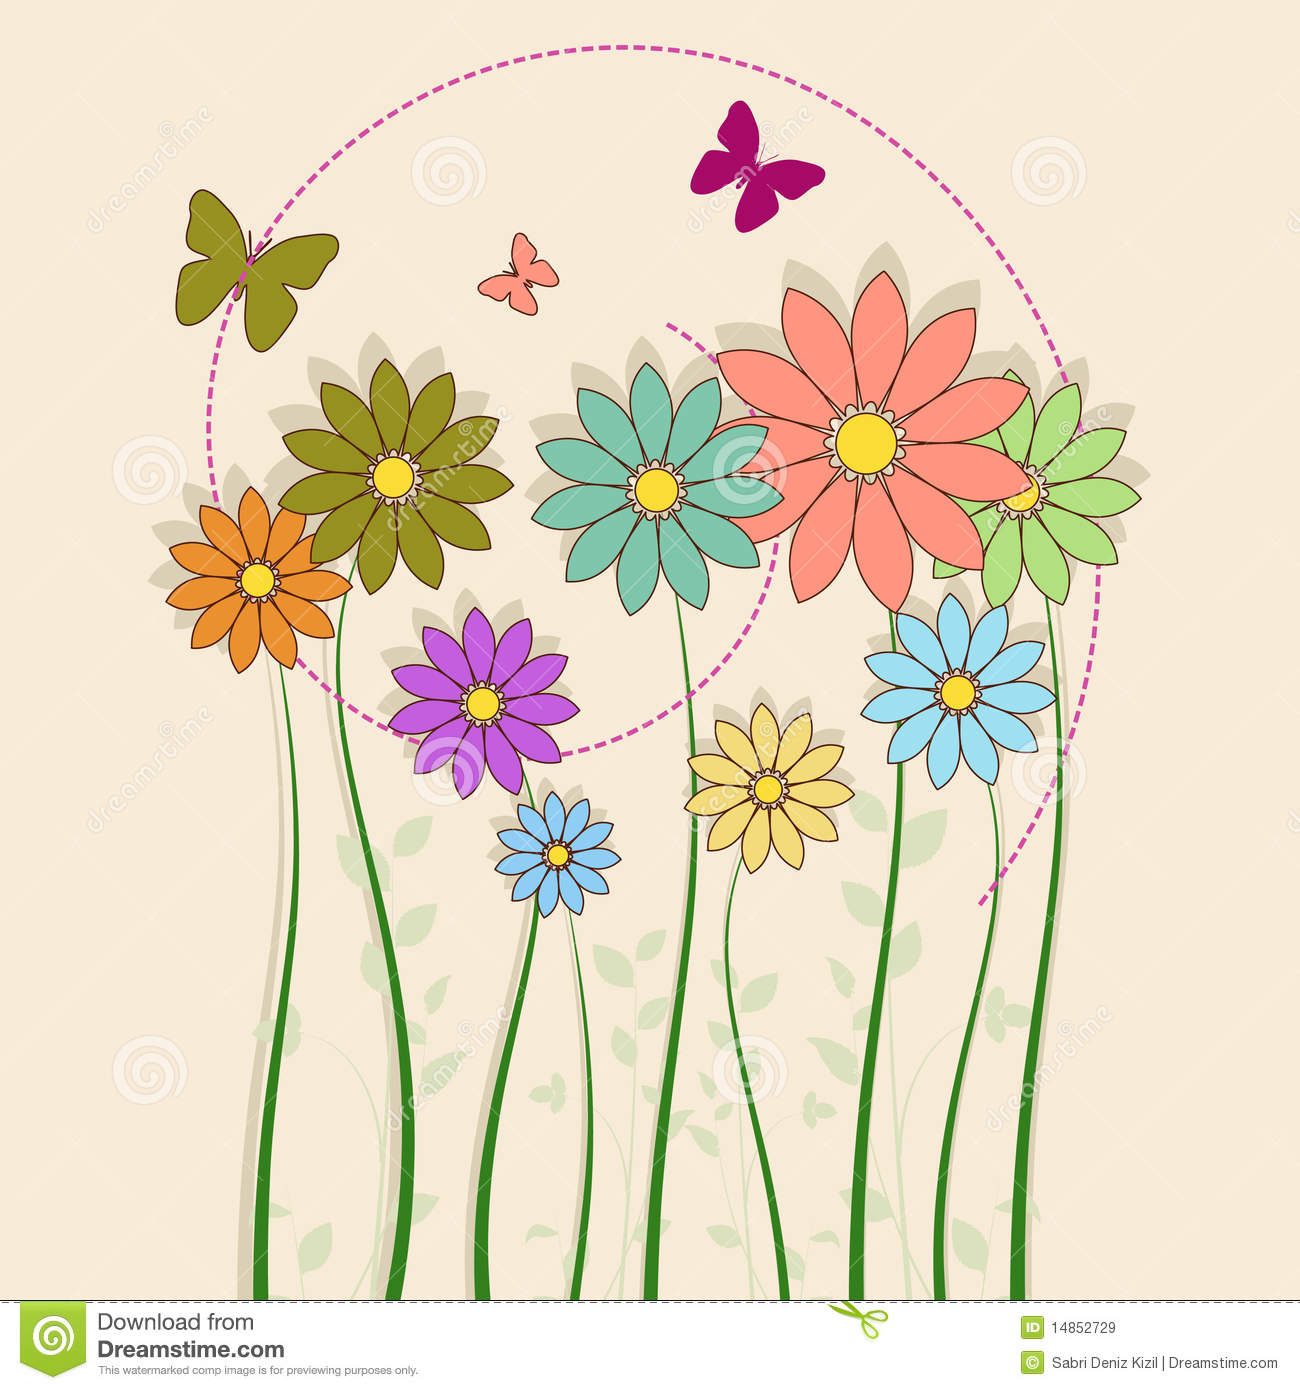 Flowers with butterfly